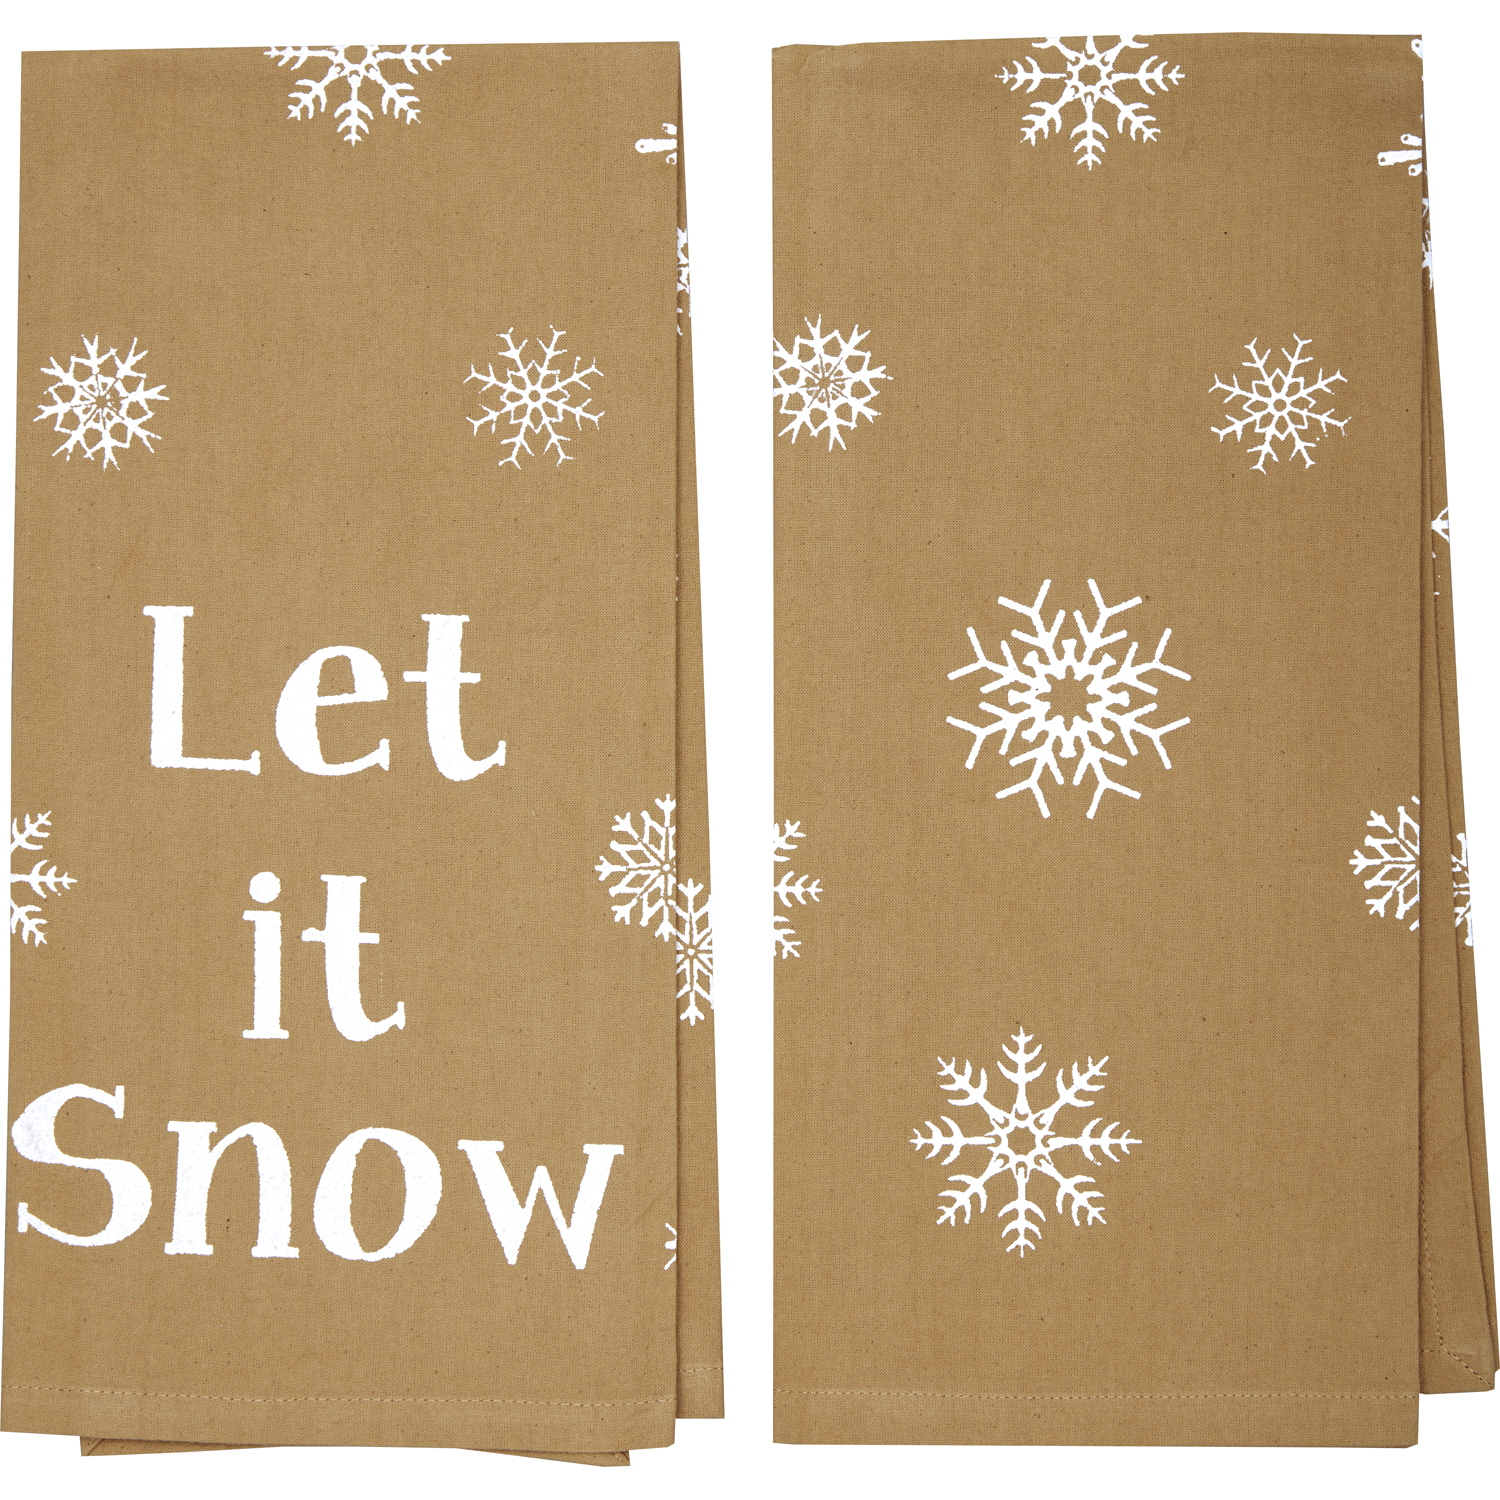 Snowflake Burlap Natural Let It Snow Tea Towel Set of 2 19x28